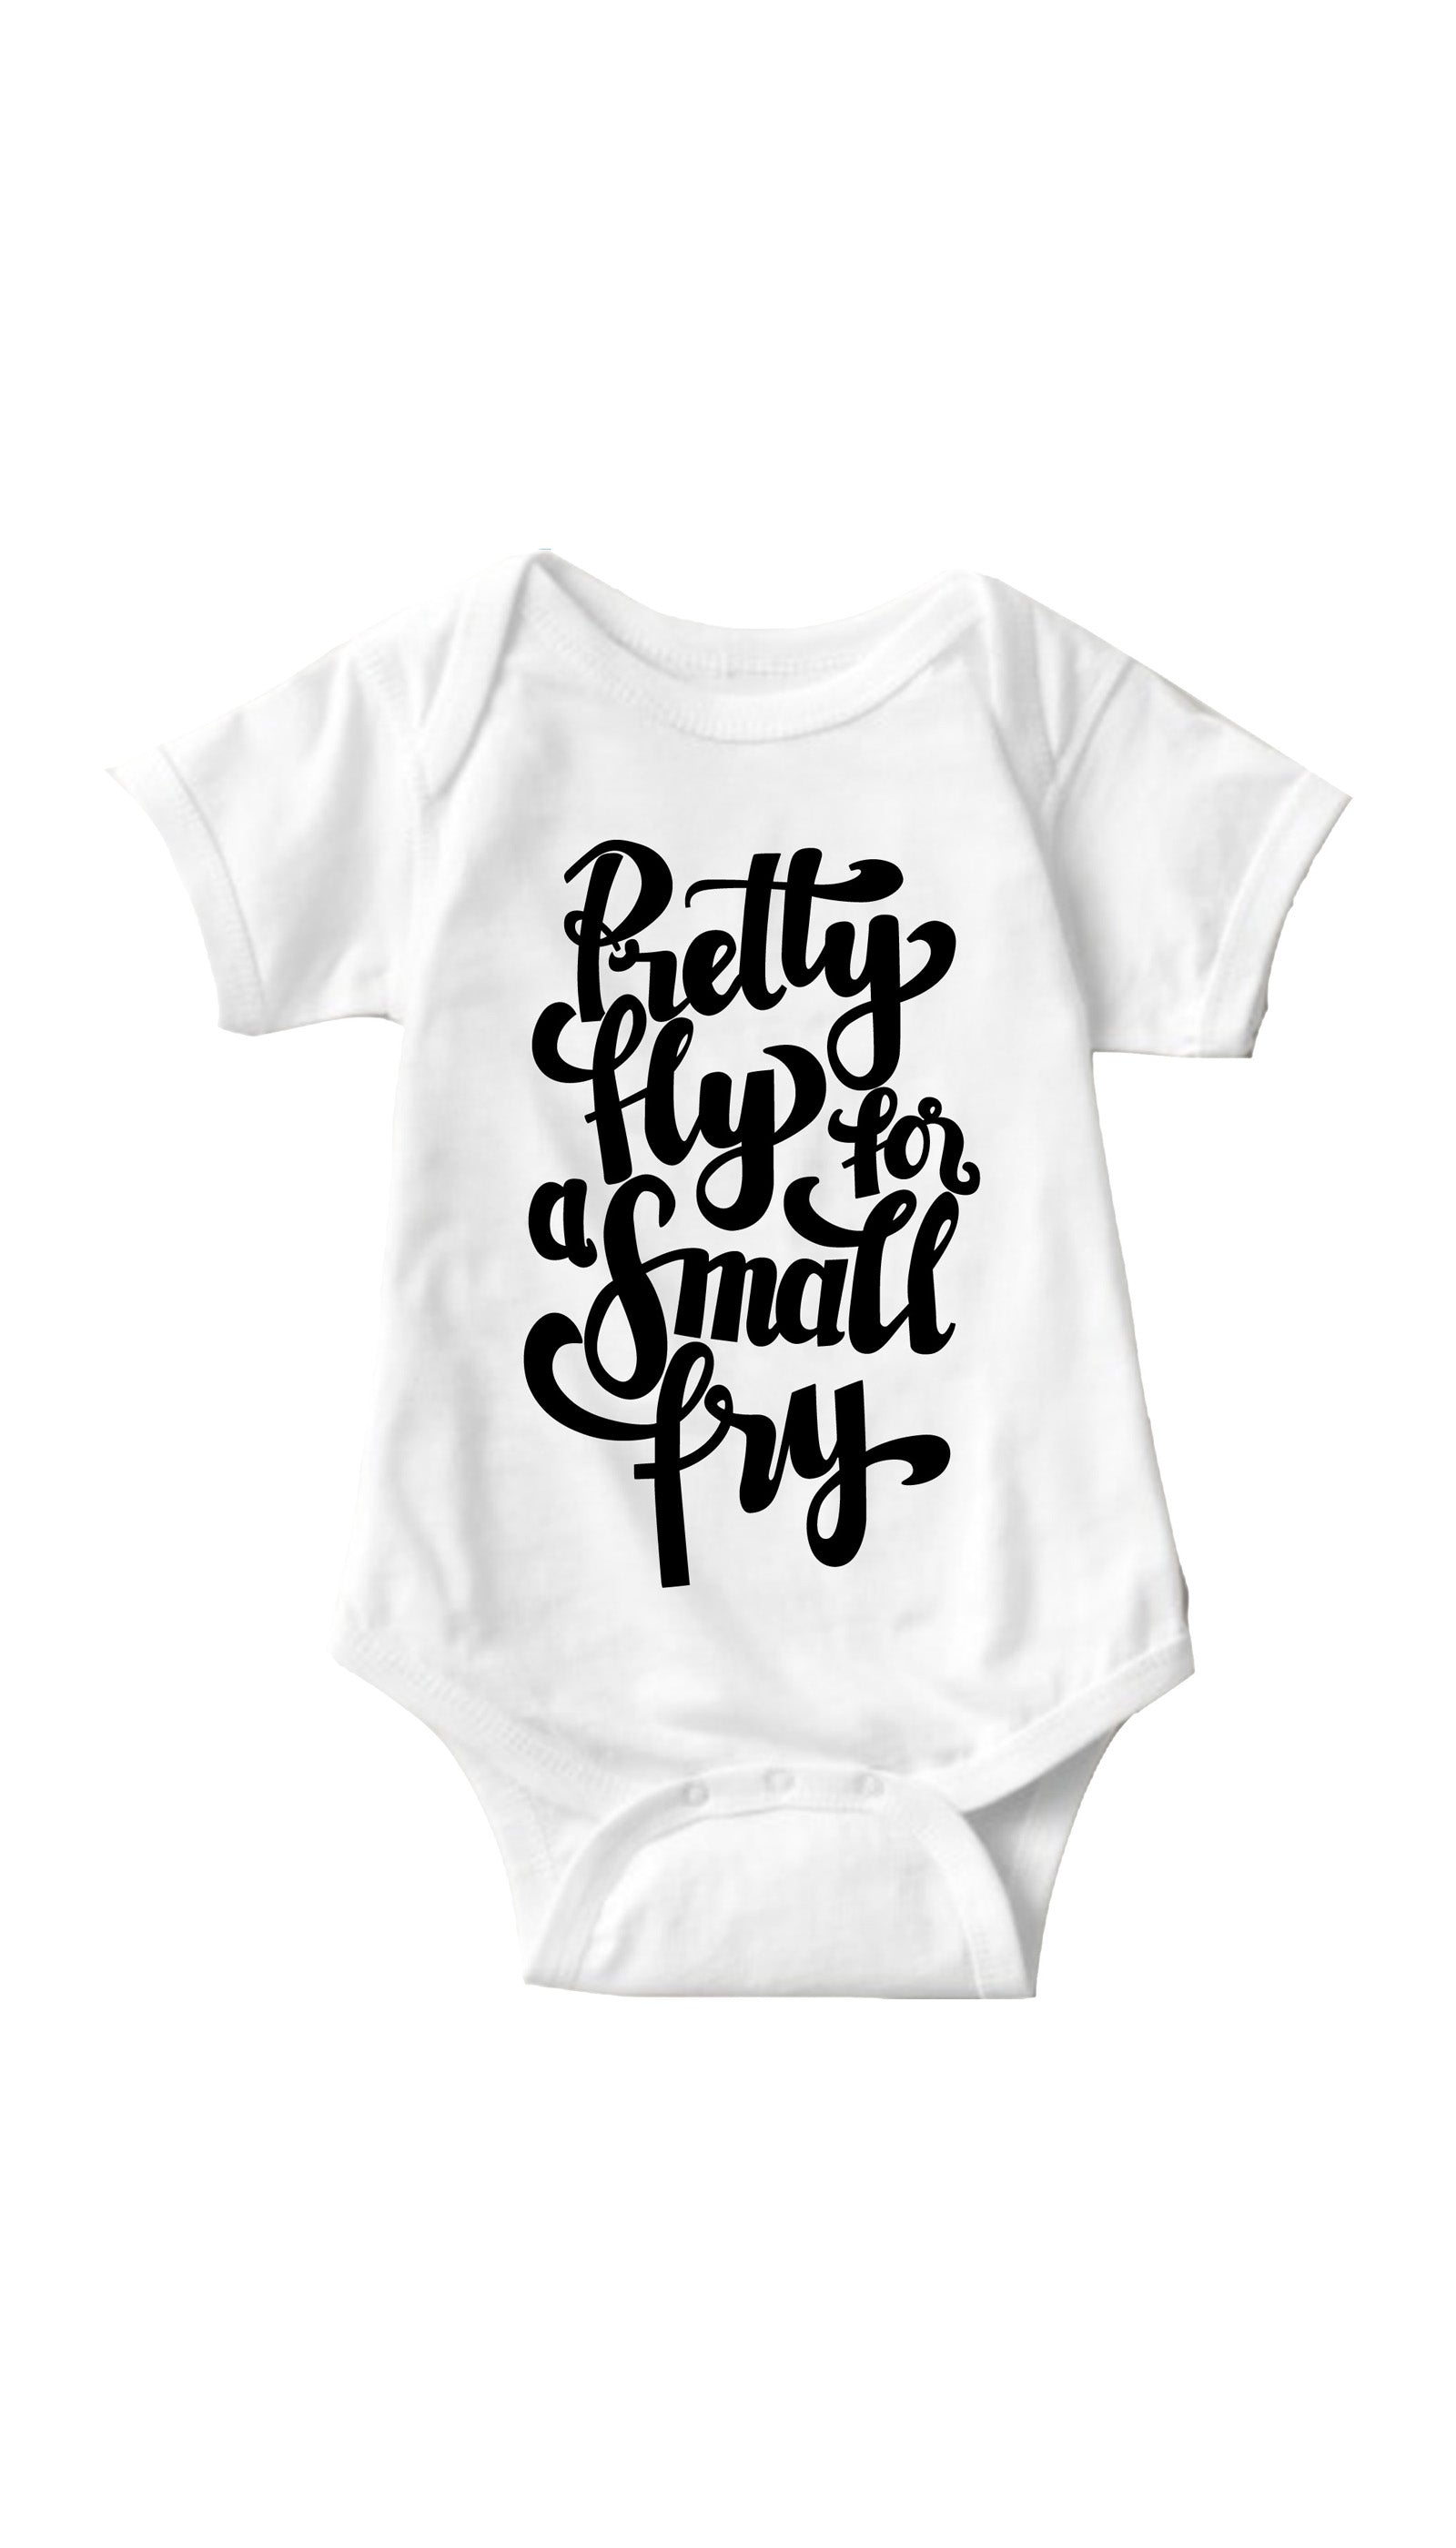 783764fb8 Pretty Fly For A Small Fry Cute   Funny Baby Infant Onesie ...